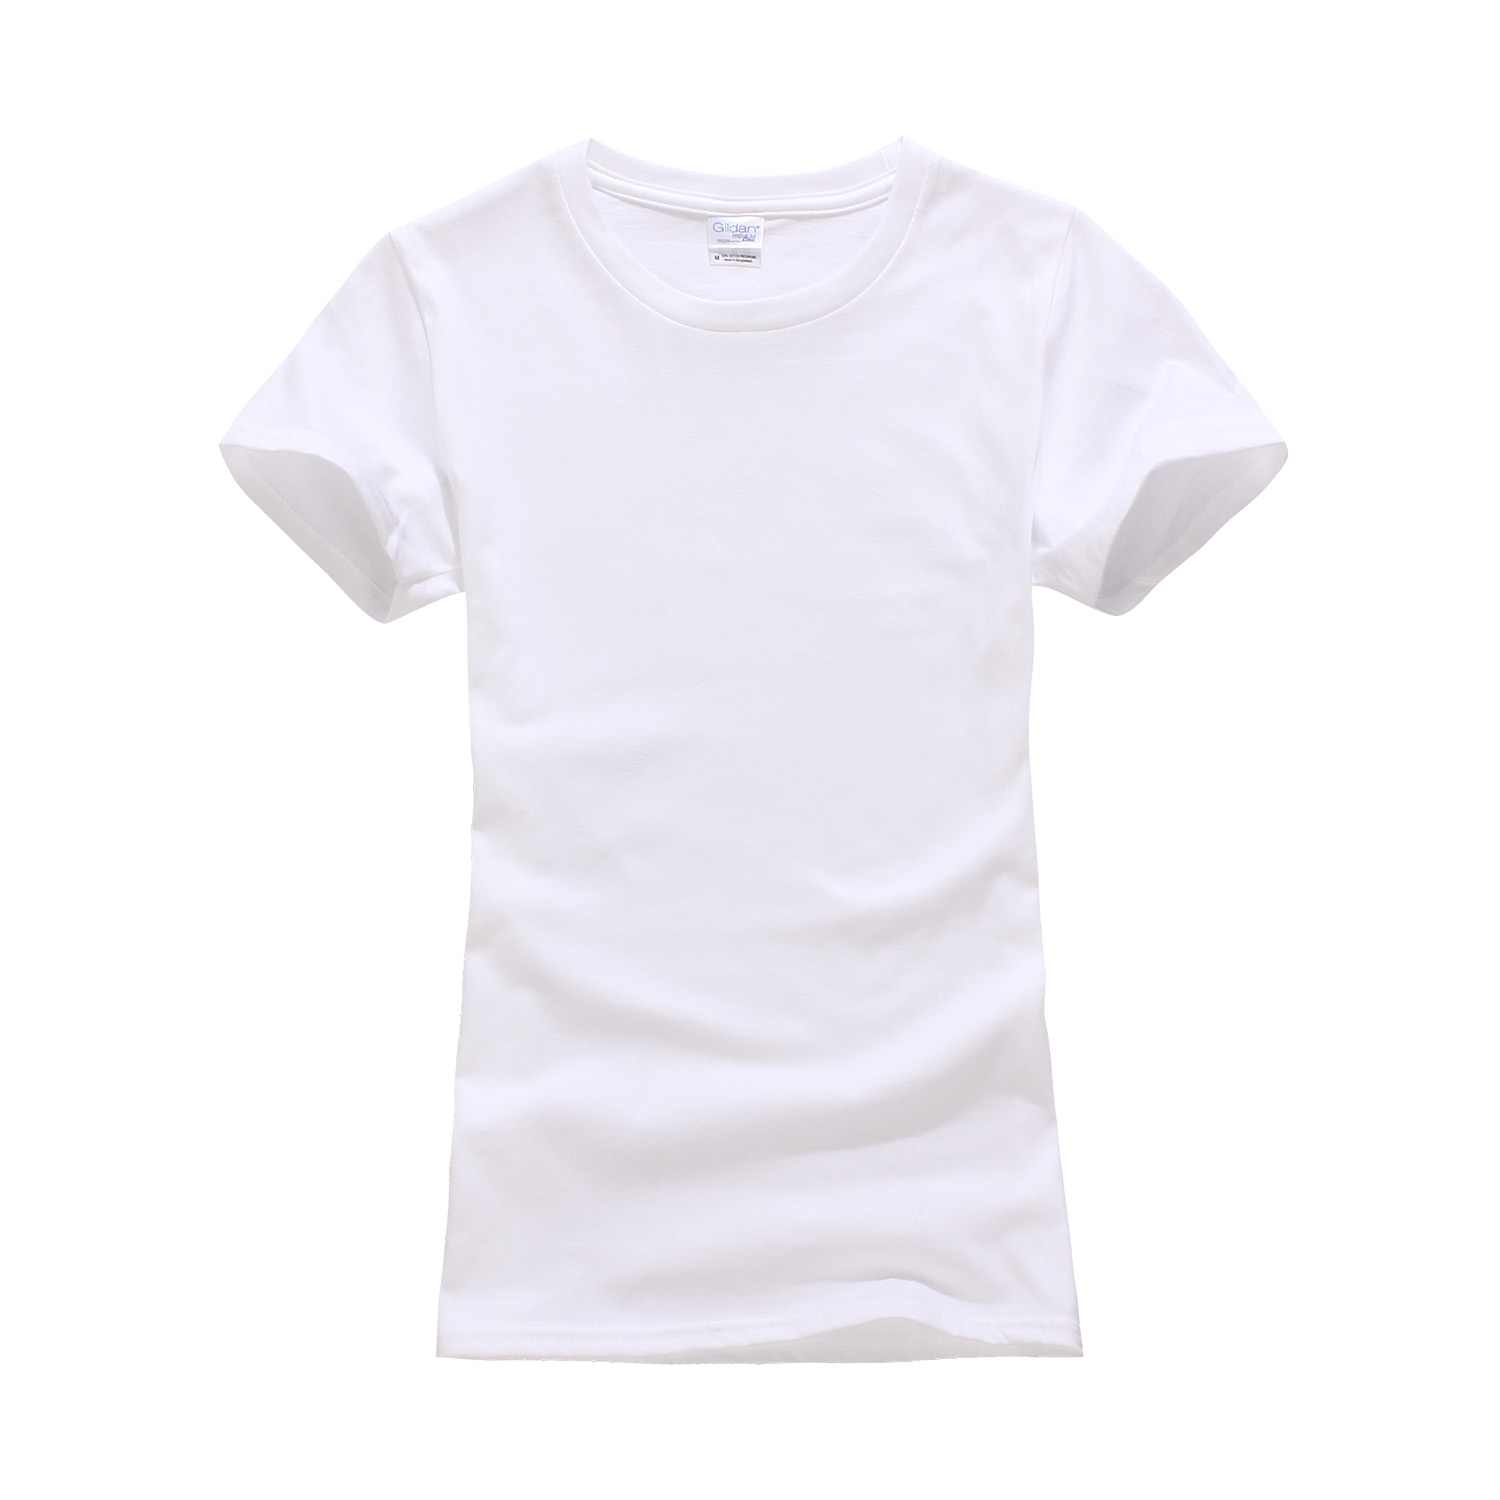 Plain white shirts cheapest t shirt jpg - 100 Cotton 2 Colors Ladies Plain Tshirt Short Sleeve Gildan Tees Women Casual Blank T